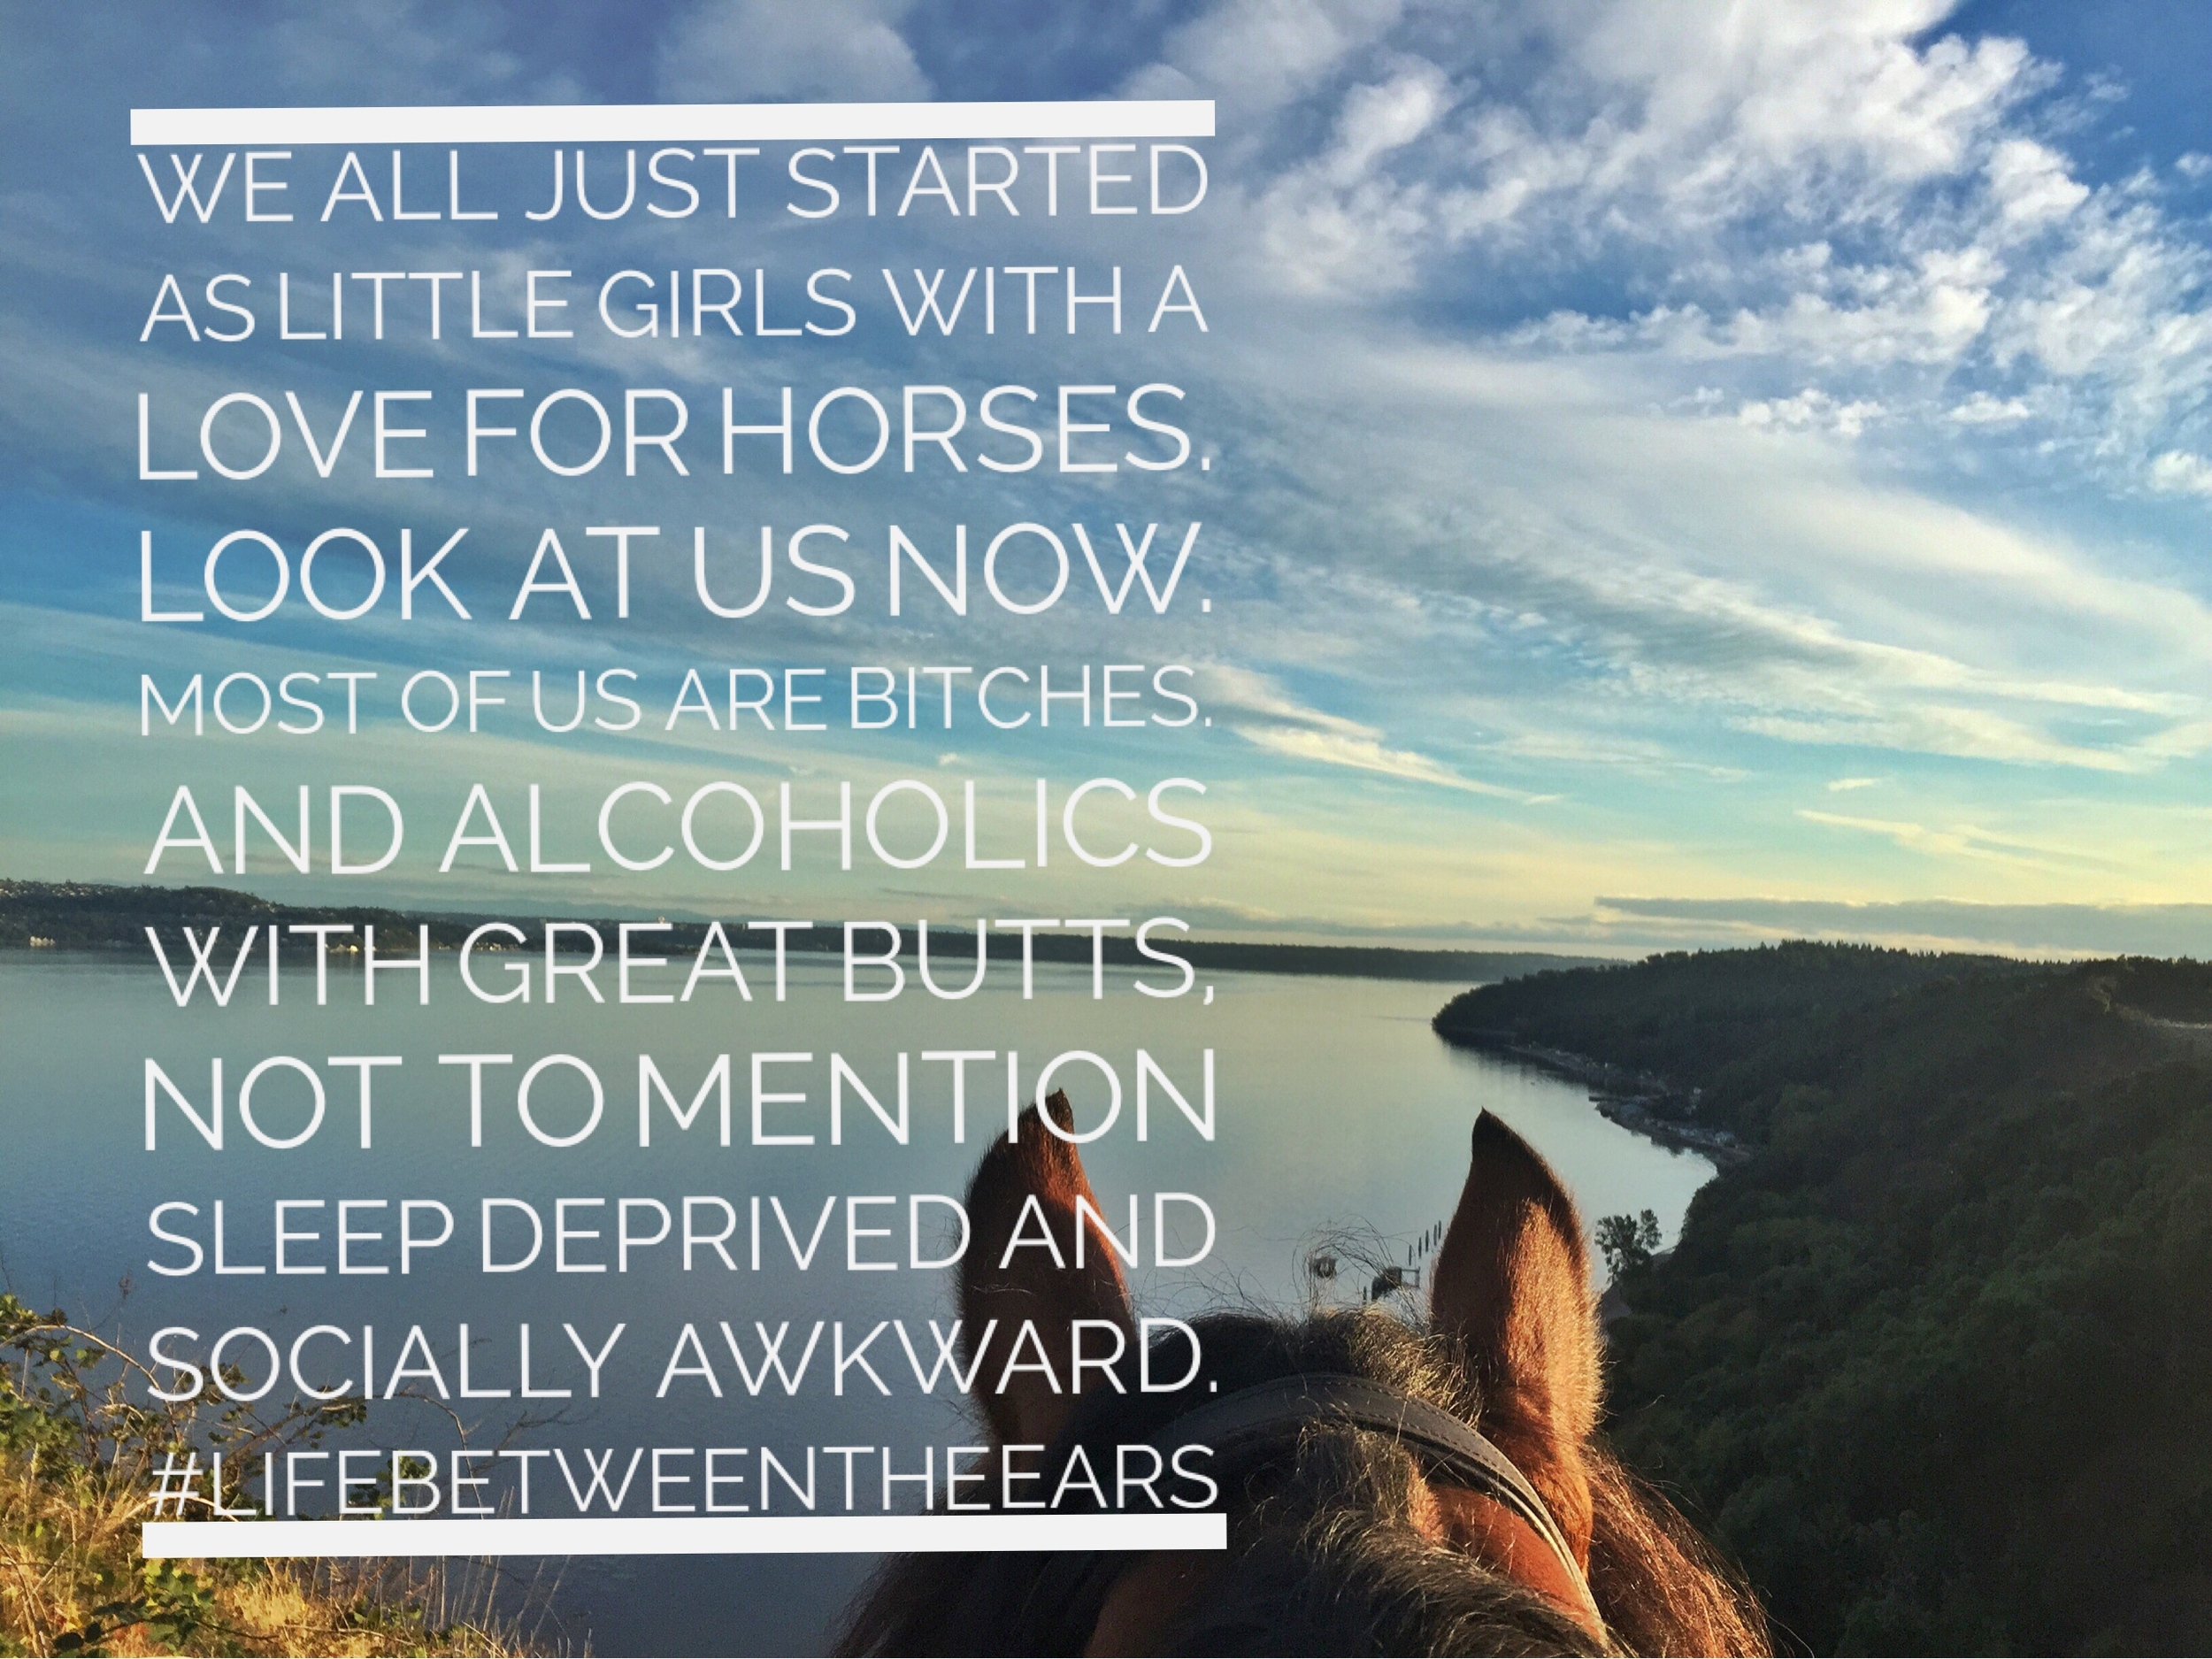 Thanks to @oscarnmag for making my day with this quote. #minusthegreatbutt #truth #lifebetweentheears